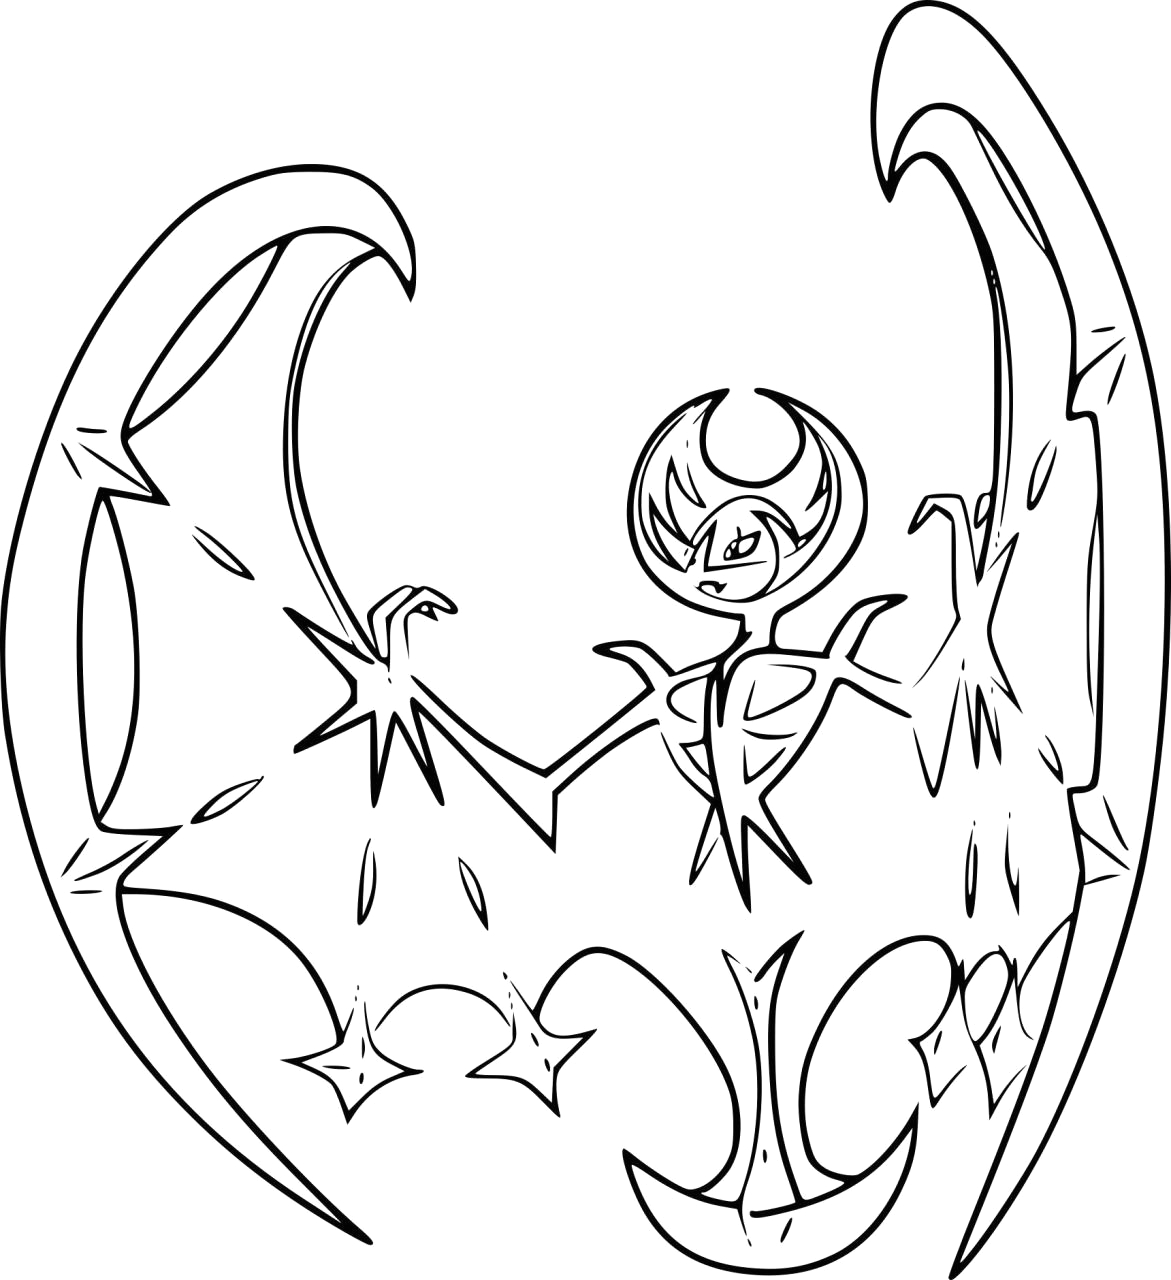 Legendary Sun and Moon Pokemon Coloring Pages Legendary Mega Sun and Moon Pokemon Coloring Pages